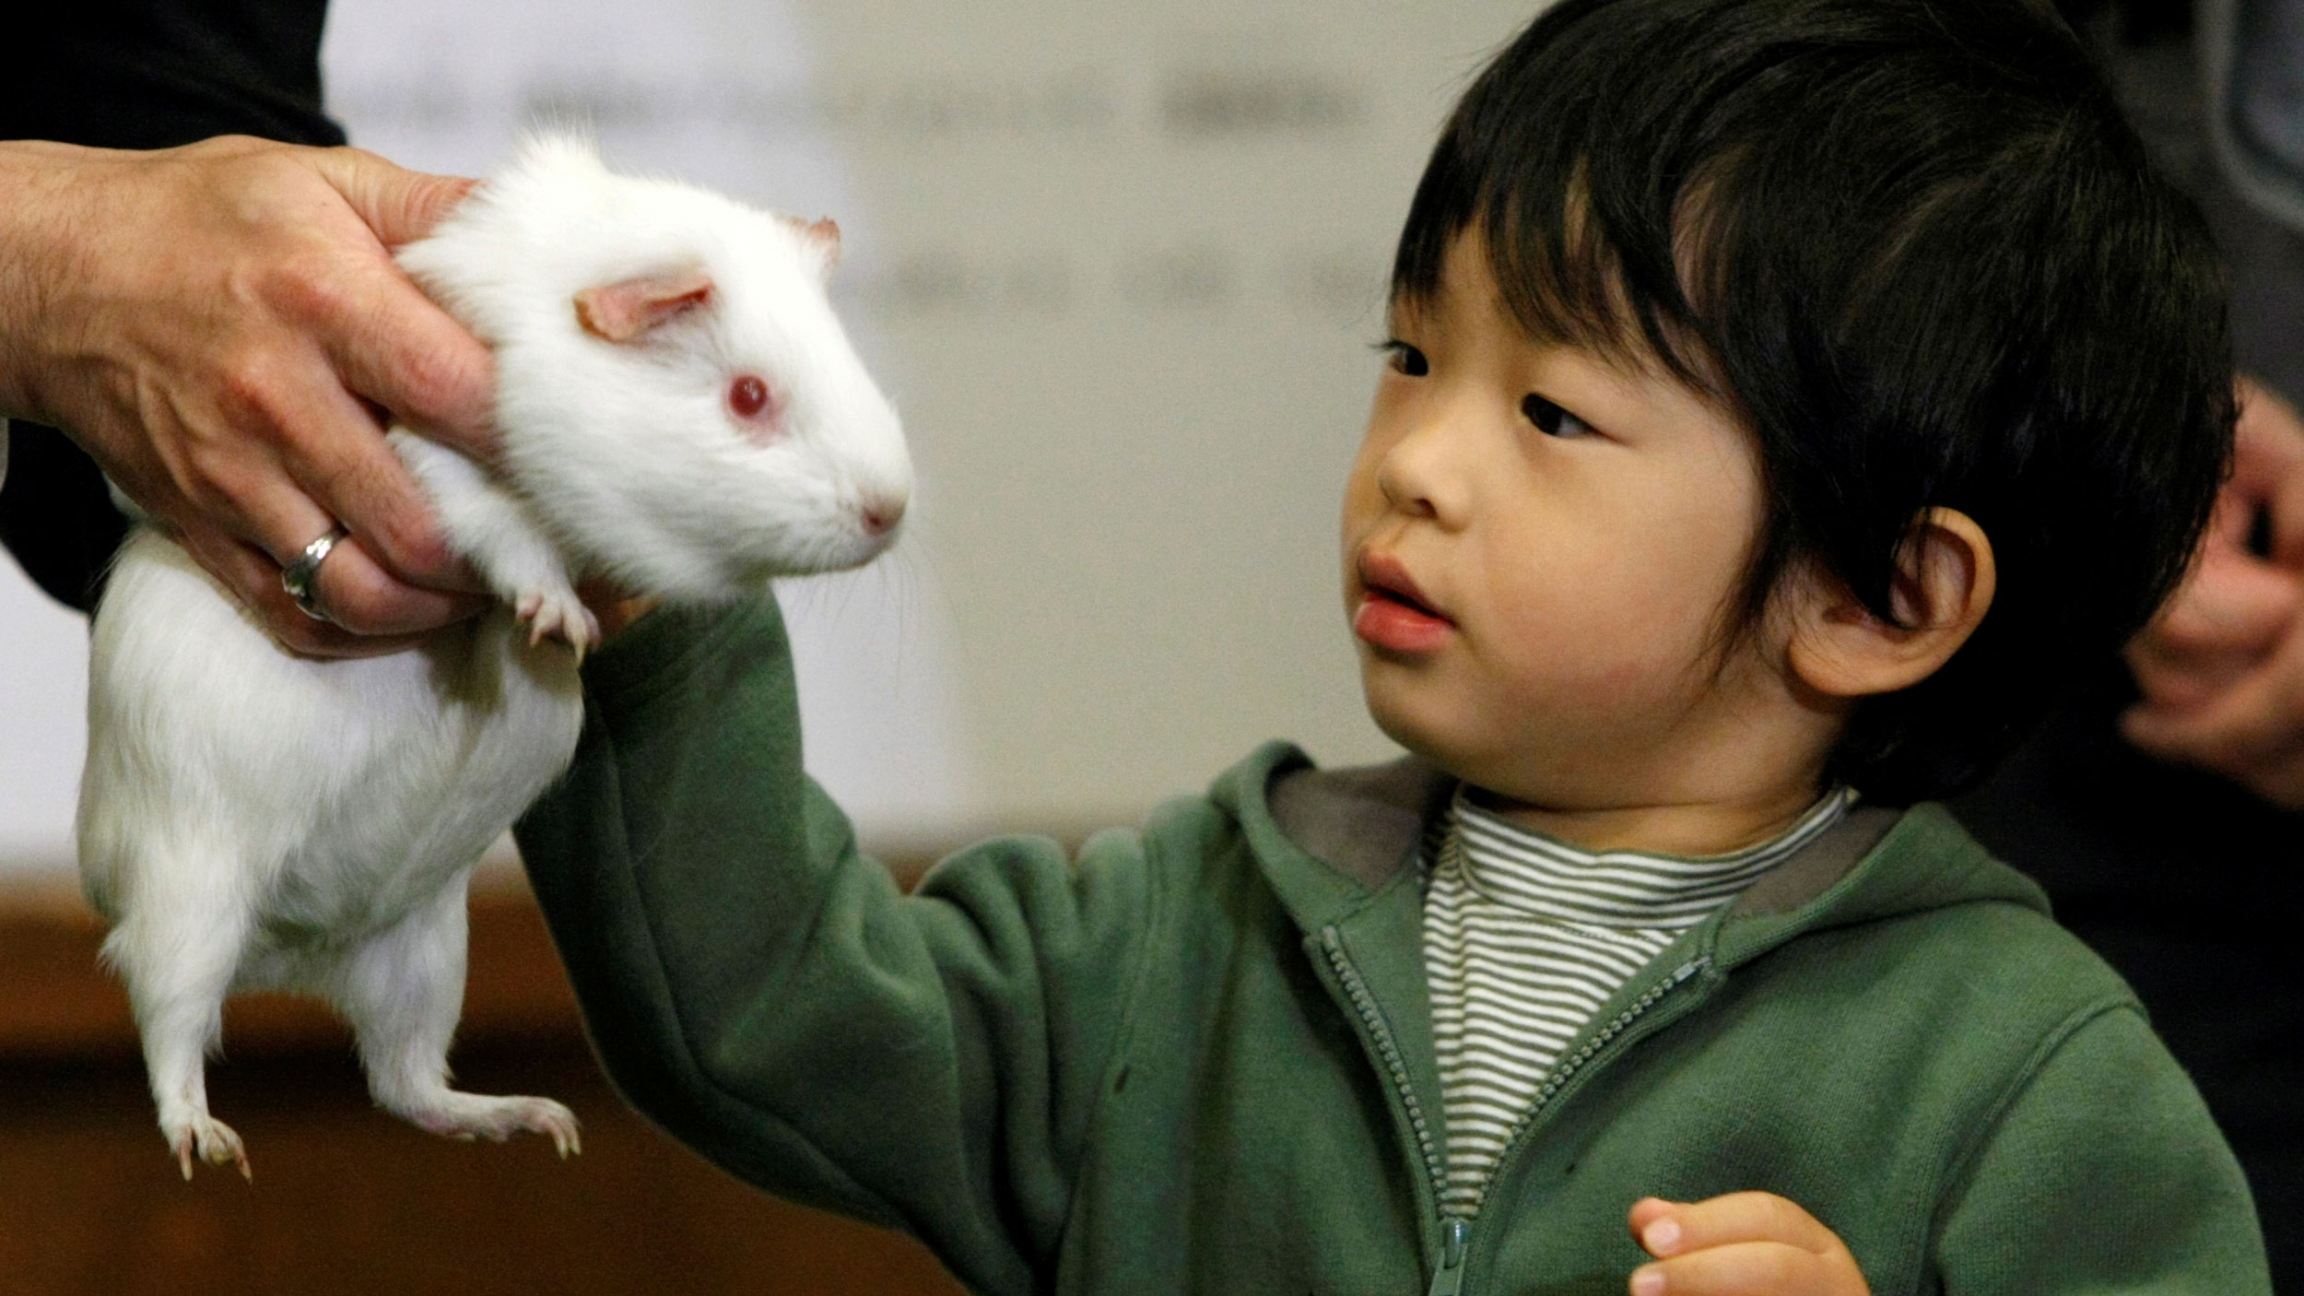 A small child touches a guinea pig